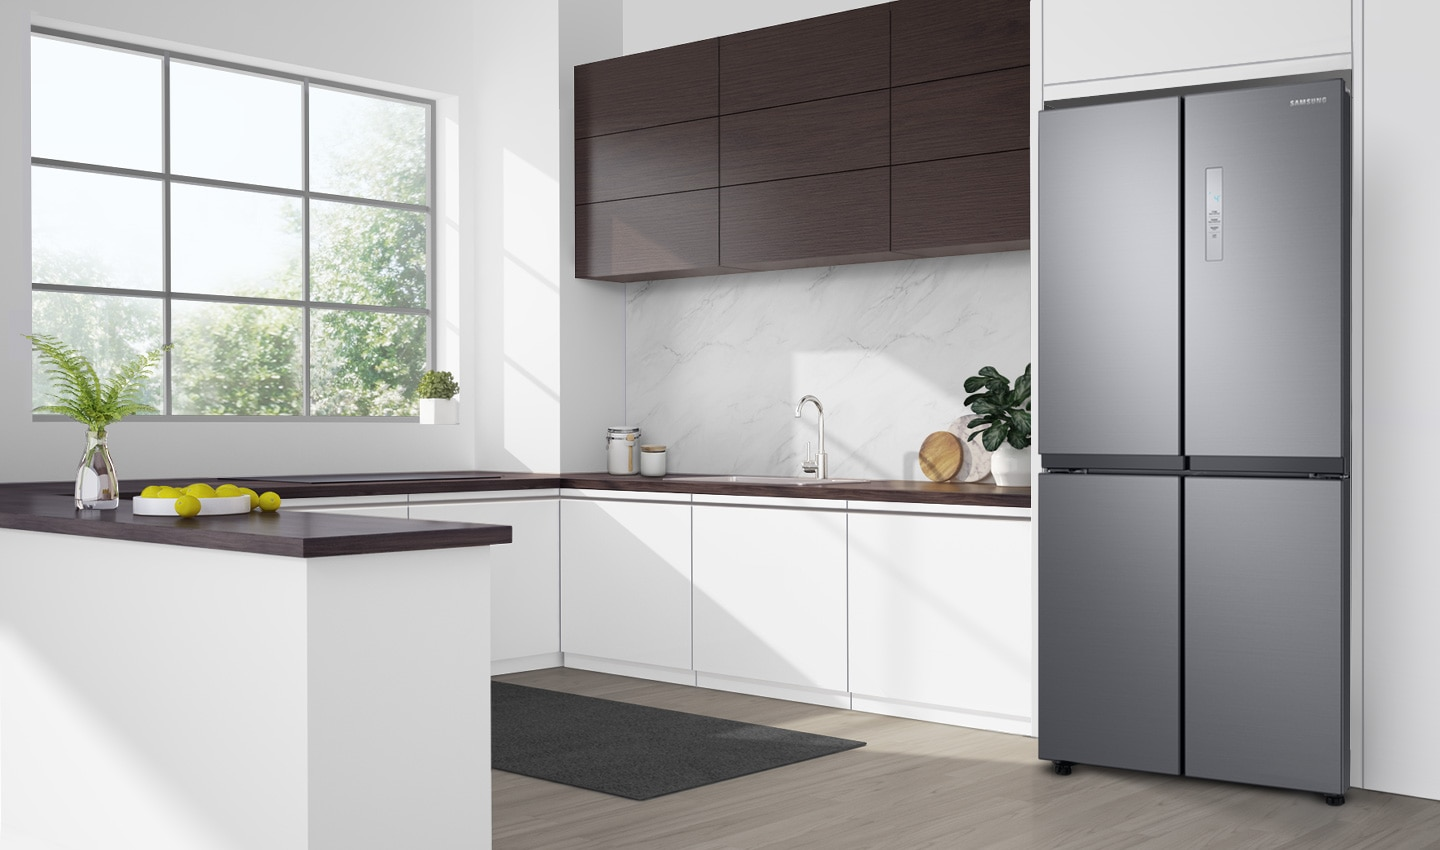 The SRF5500S in a kitchen. The SRF5500S is positioned slightly forward of the wall, a little further than the depth of the door